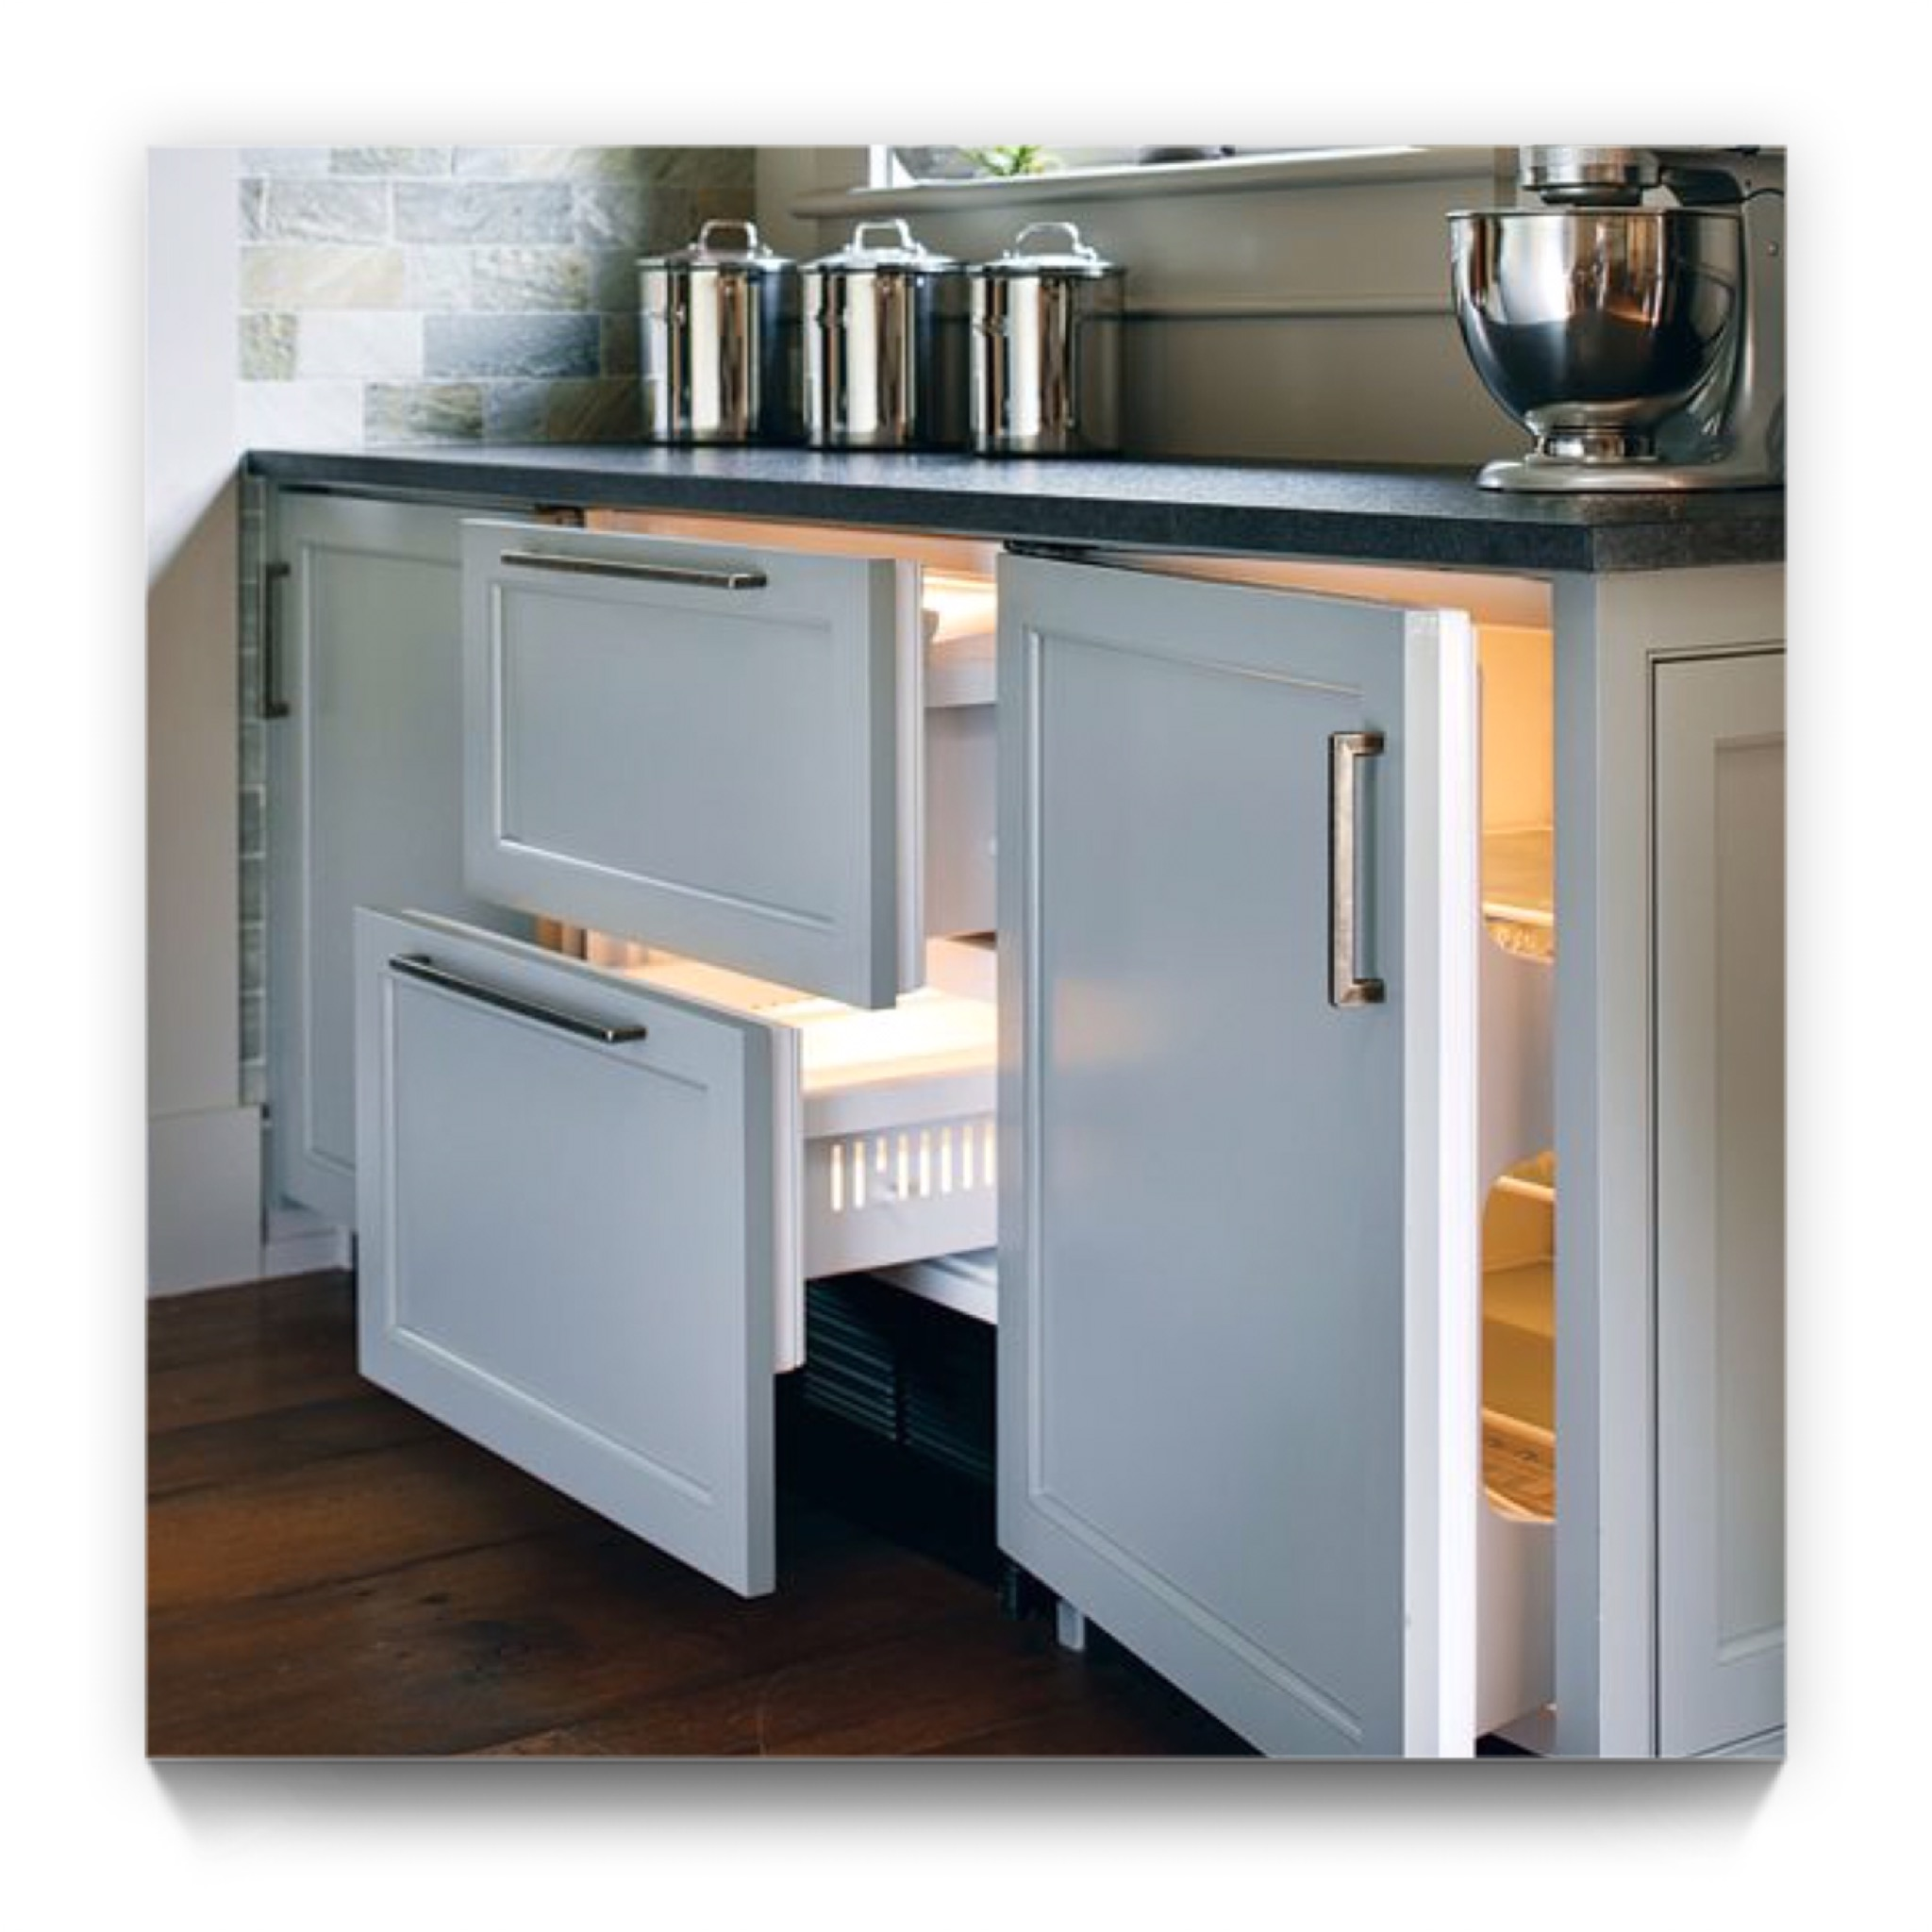 Kitchen Remodeling - Order Of Steps - HLS Remodeling